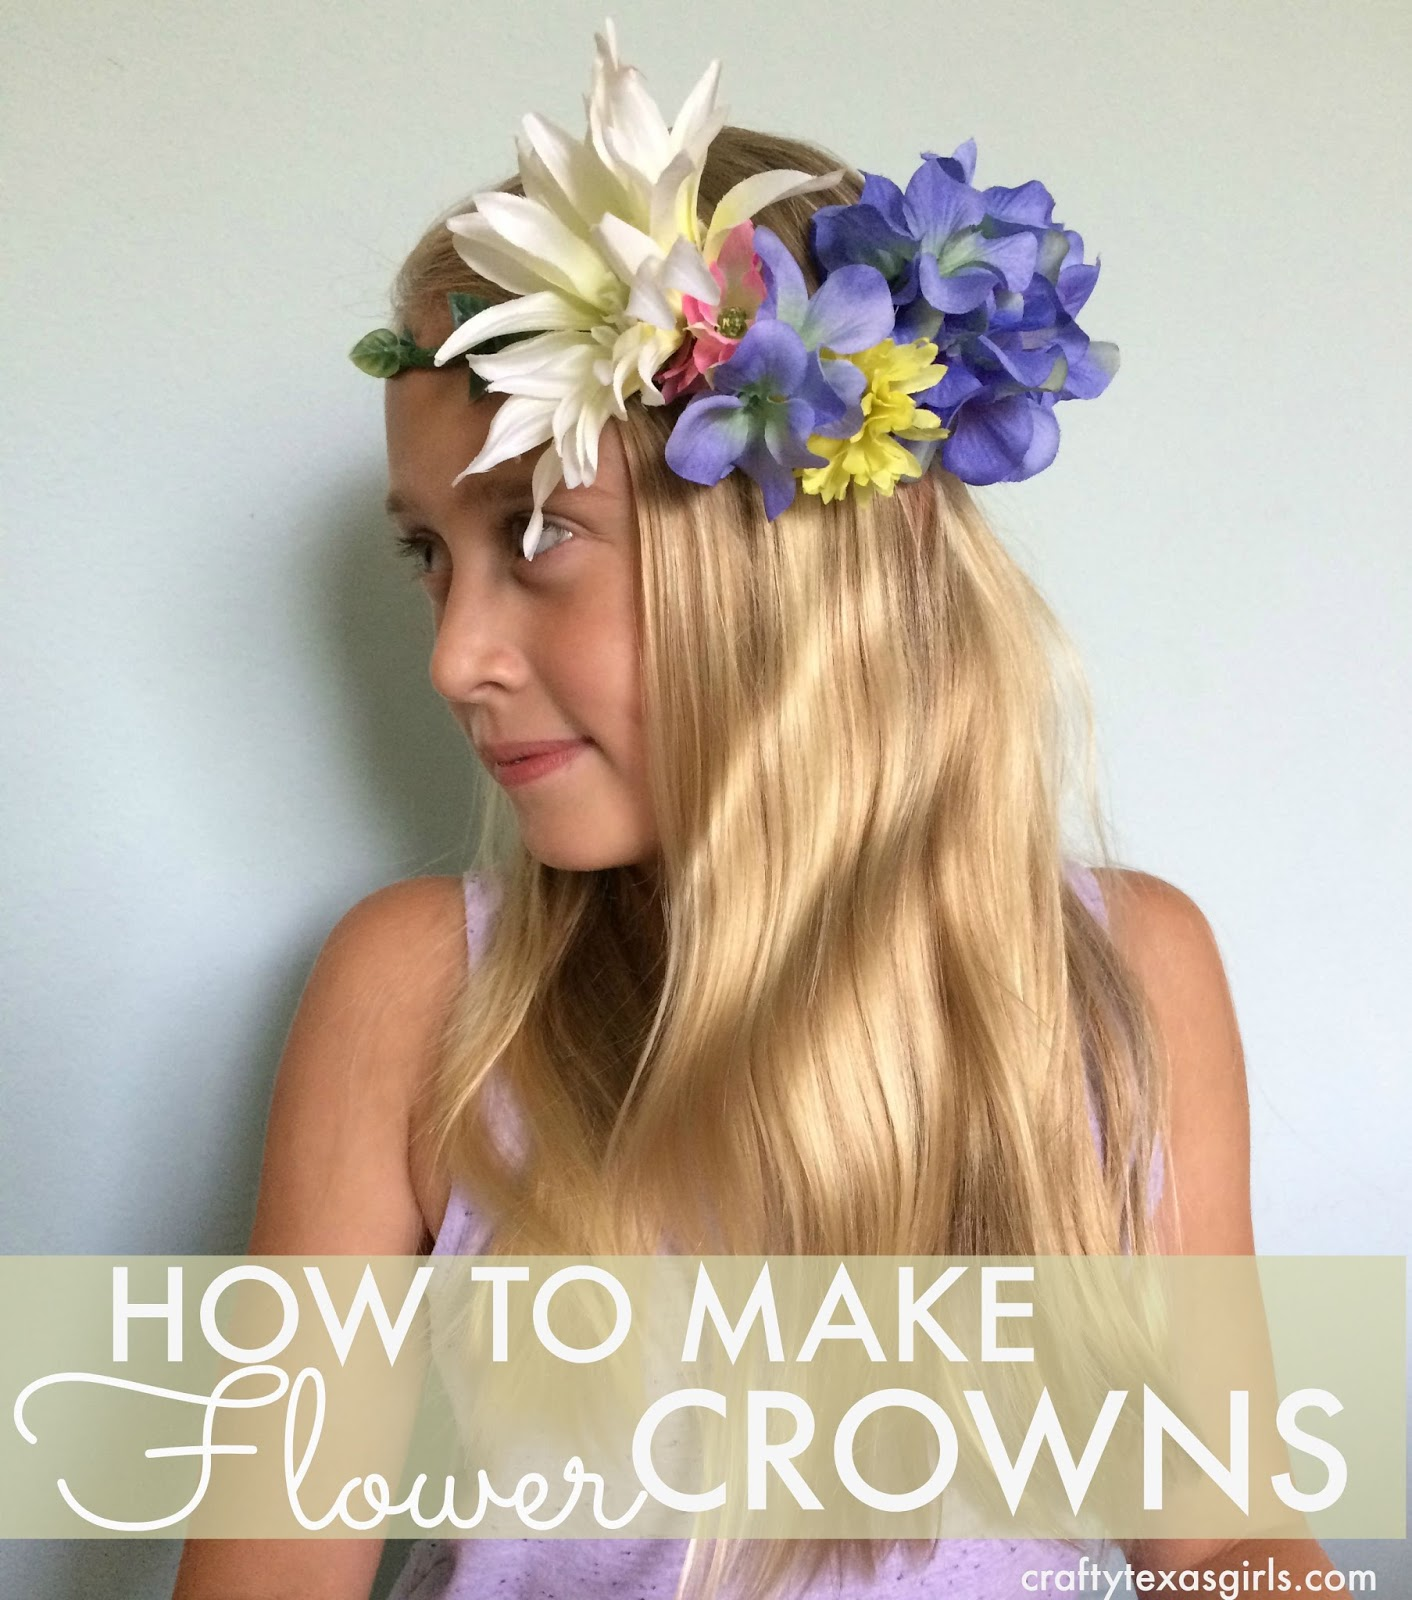 Crafty texas girls diy how to make flower crowns the supplies needed are floral wire i like this kind that is pre wrapped but the plain green works well too silk flowers or real of your choice izmirmasajfo